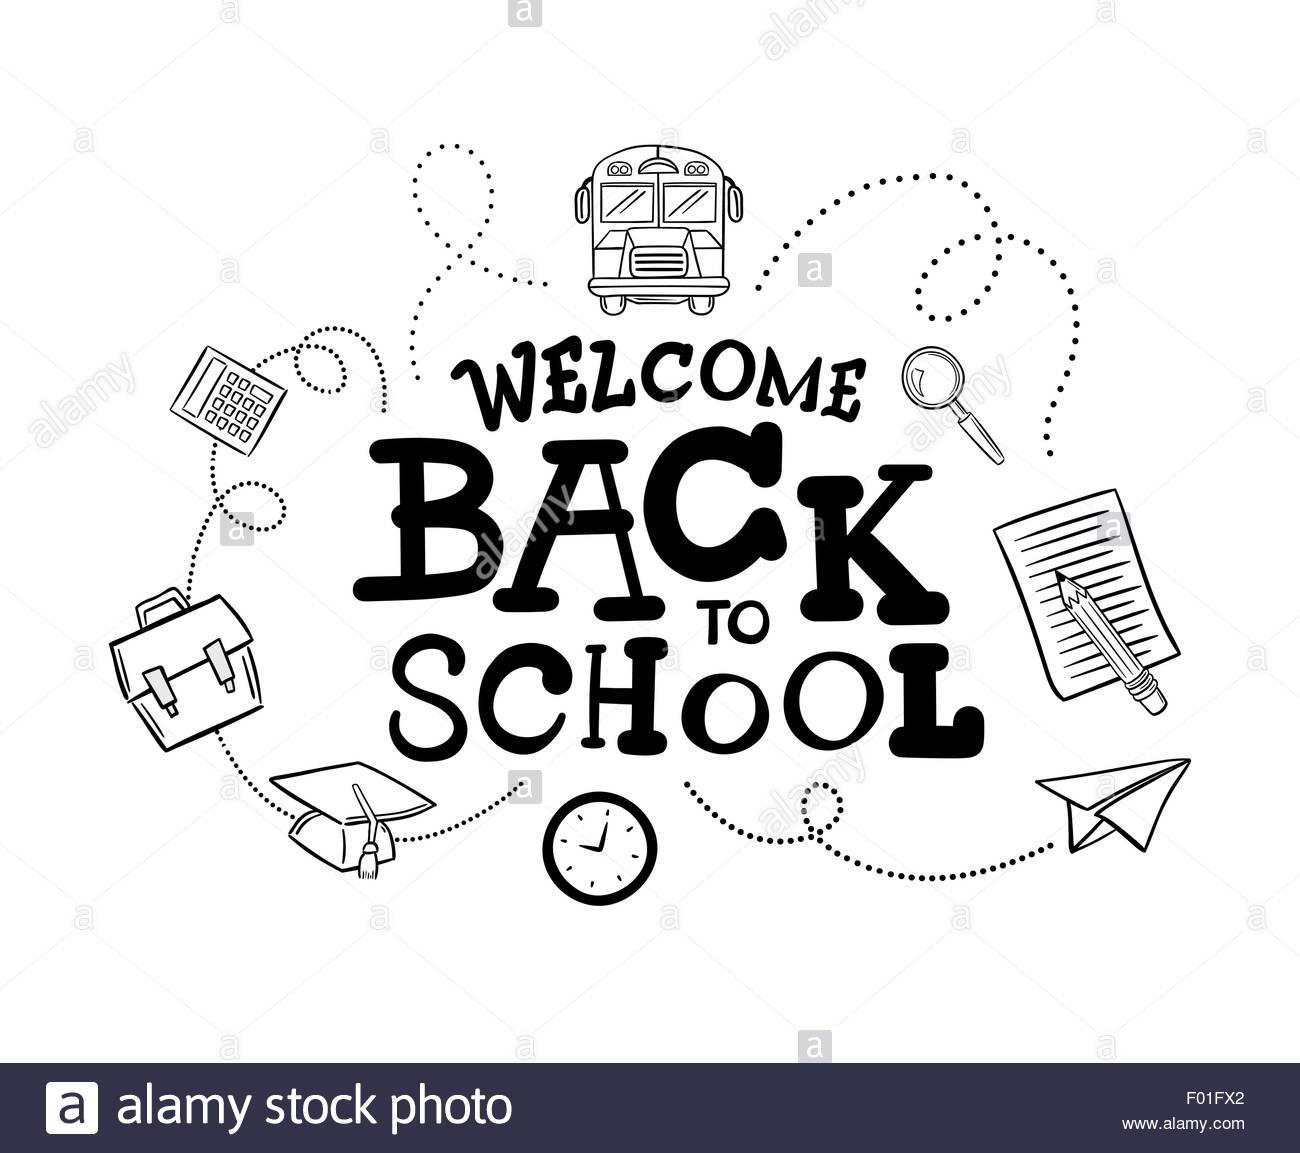 Welcome back to school clipart black and white 8 » Clipart Portal.